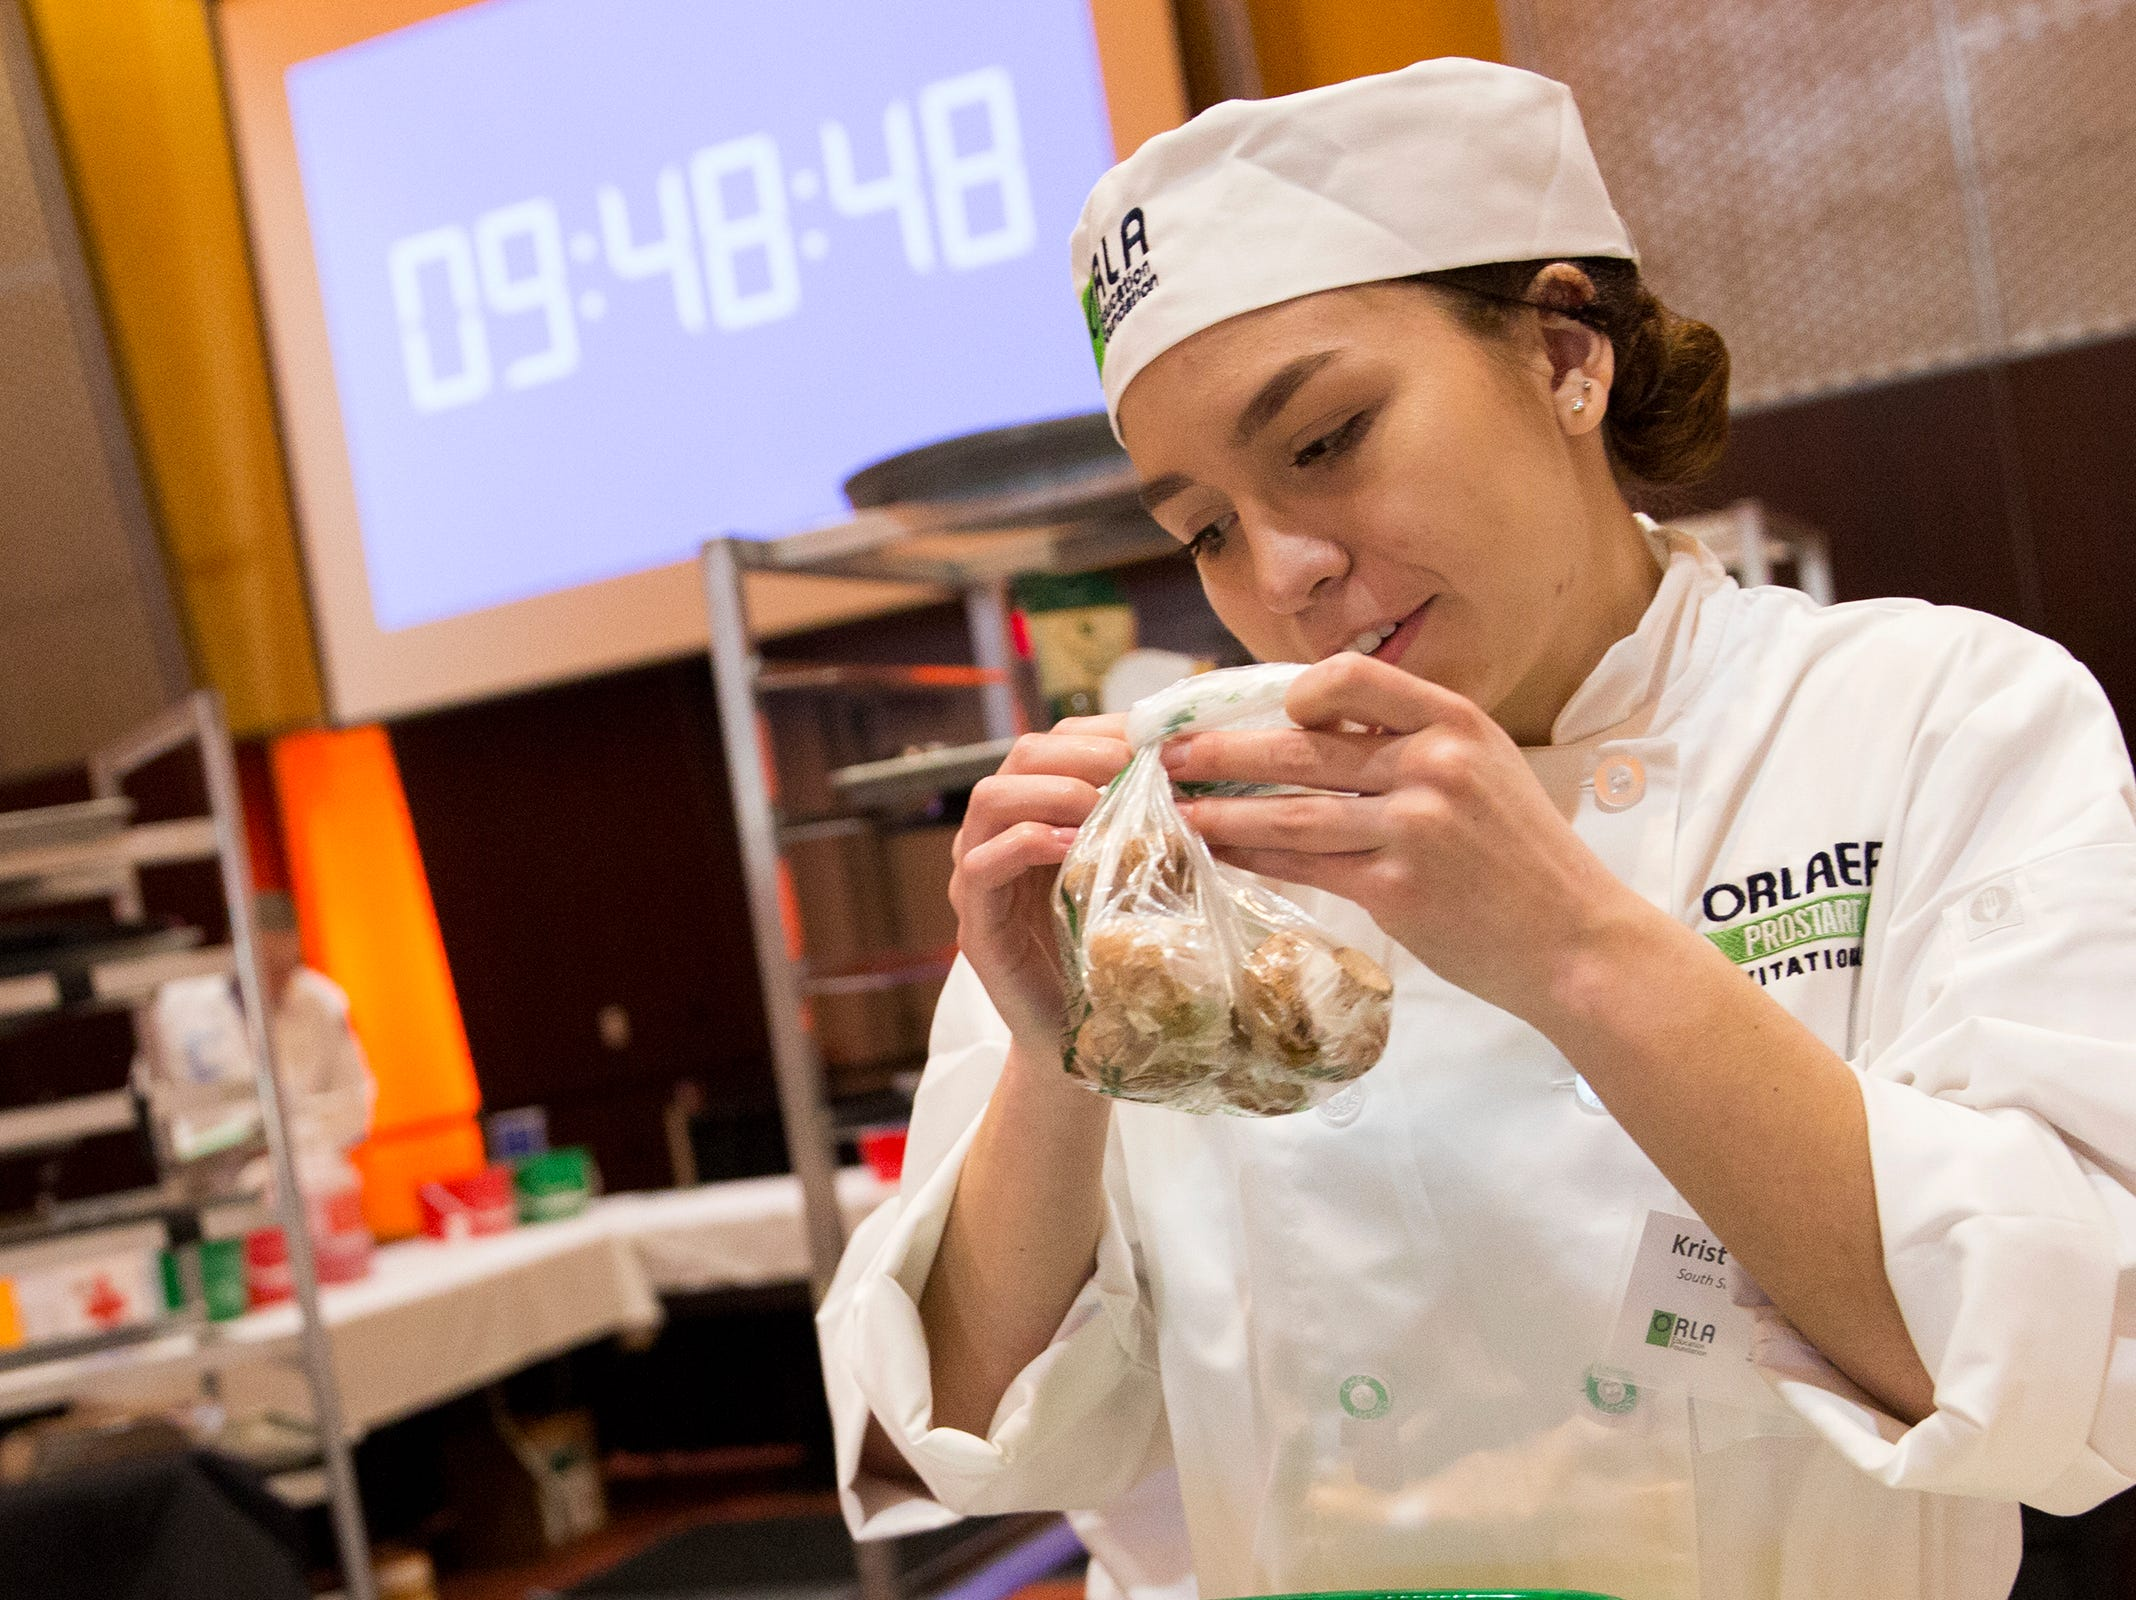 South Salem's Kristen Derting prepares mushrooms during the ORLAEF's ProStart Invitational, a statewide high school culinary competition, at the Salem Convention Center on March 18, 2019.